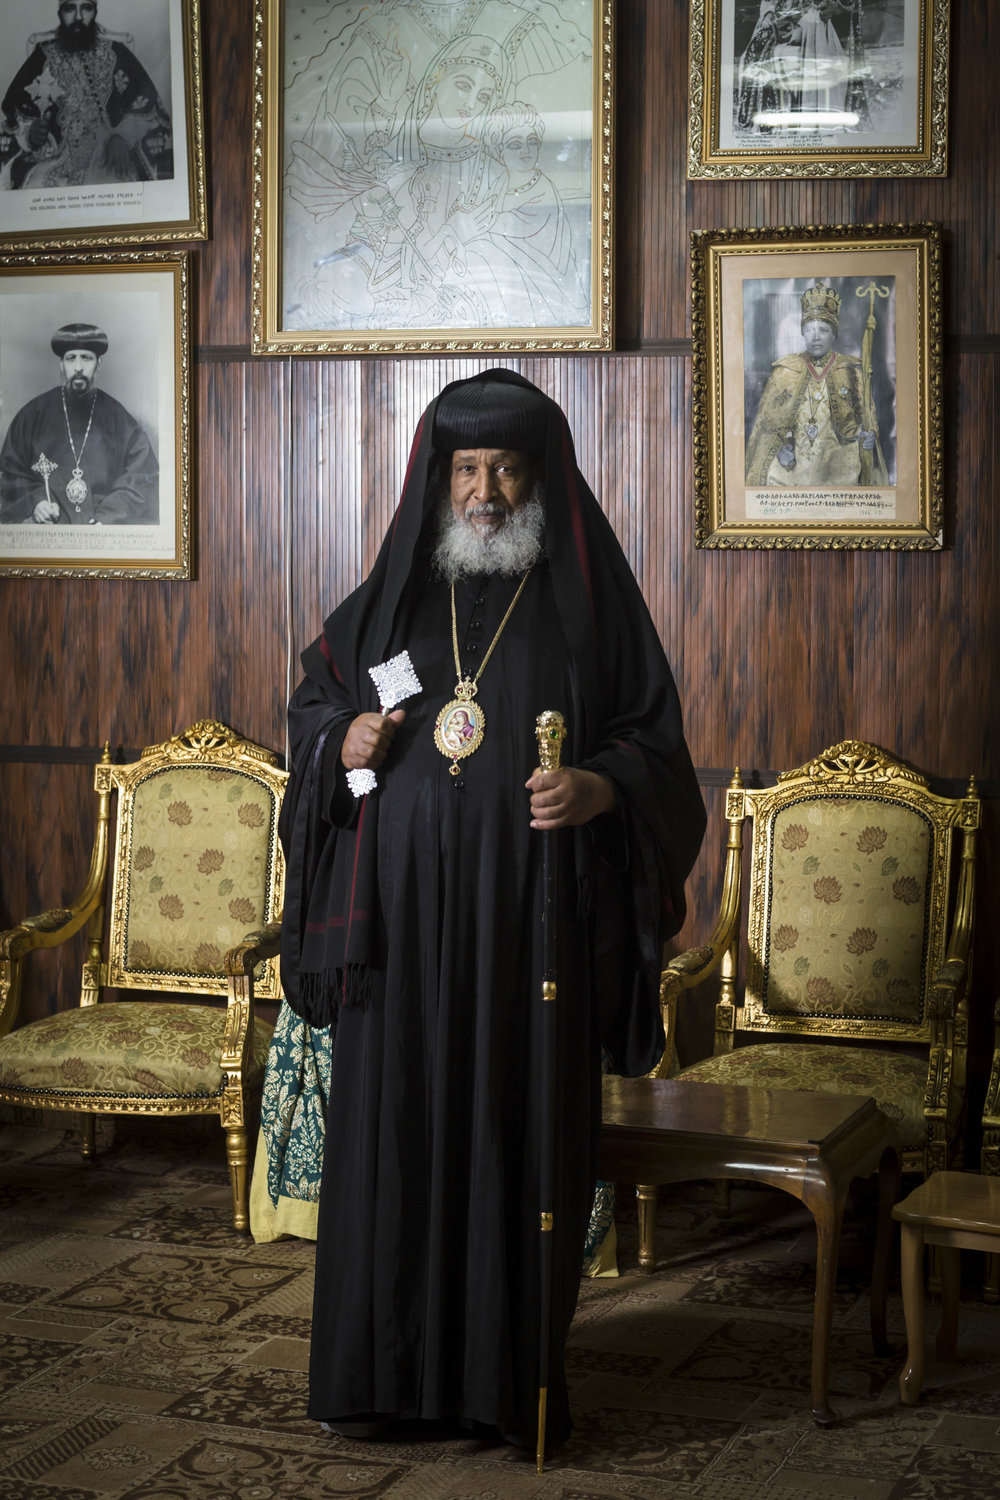 Portrait of Archbishop Abune Enbaqom the Ethiopian Orthodox Patriarchate in Jerusalem's Old City